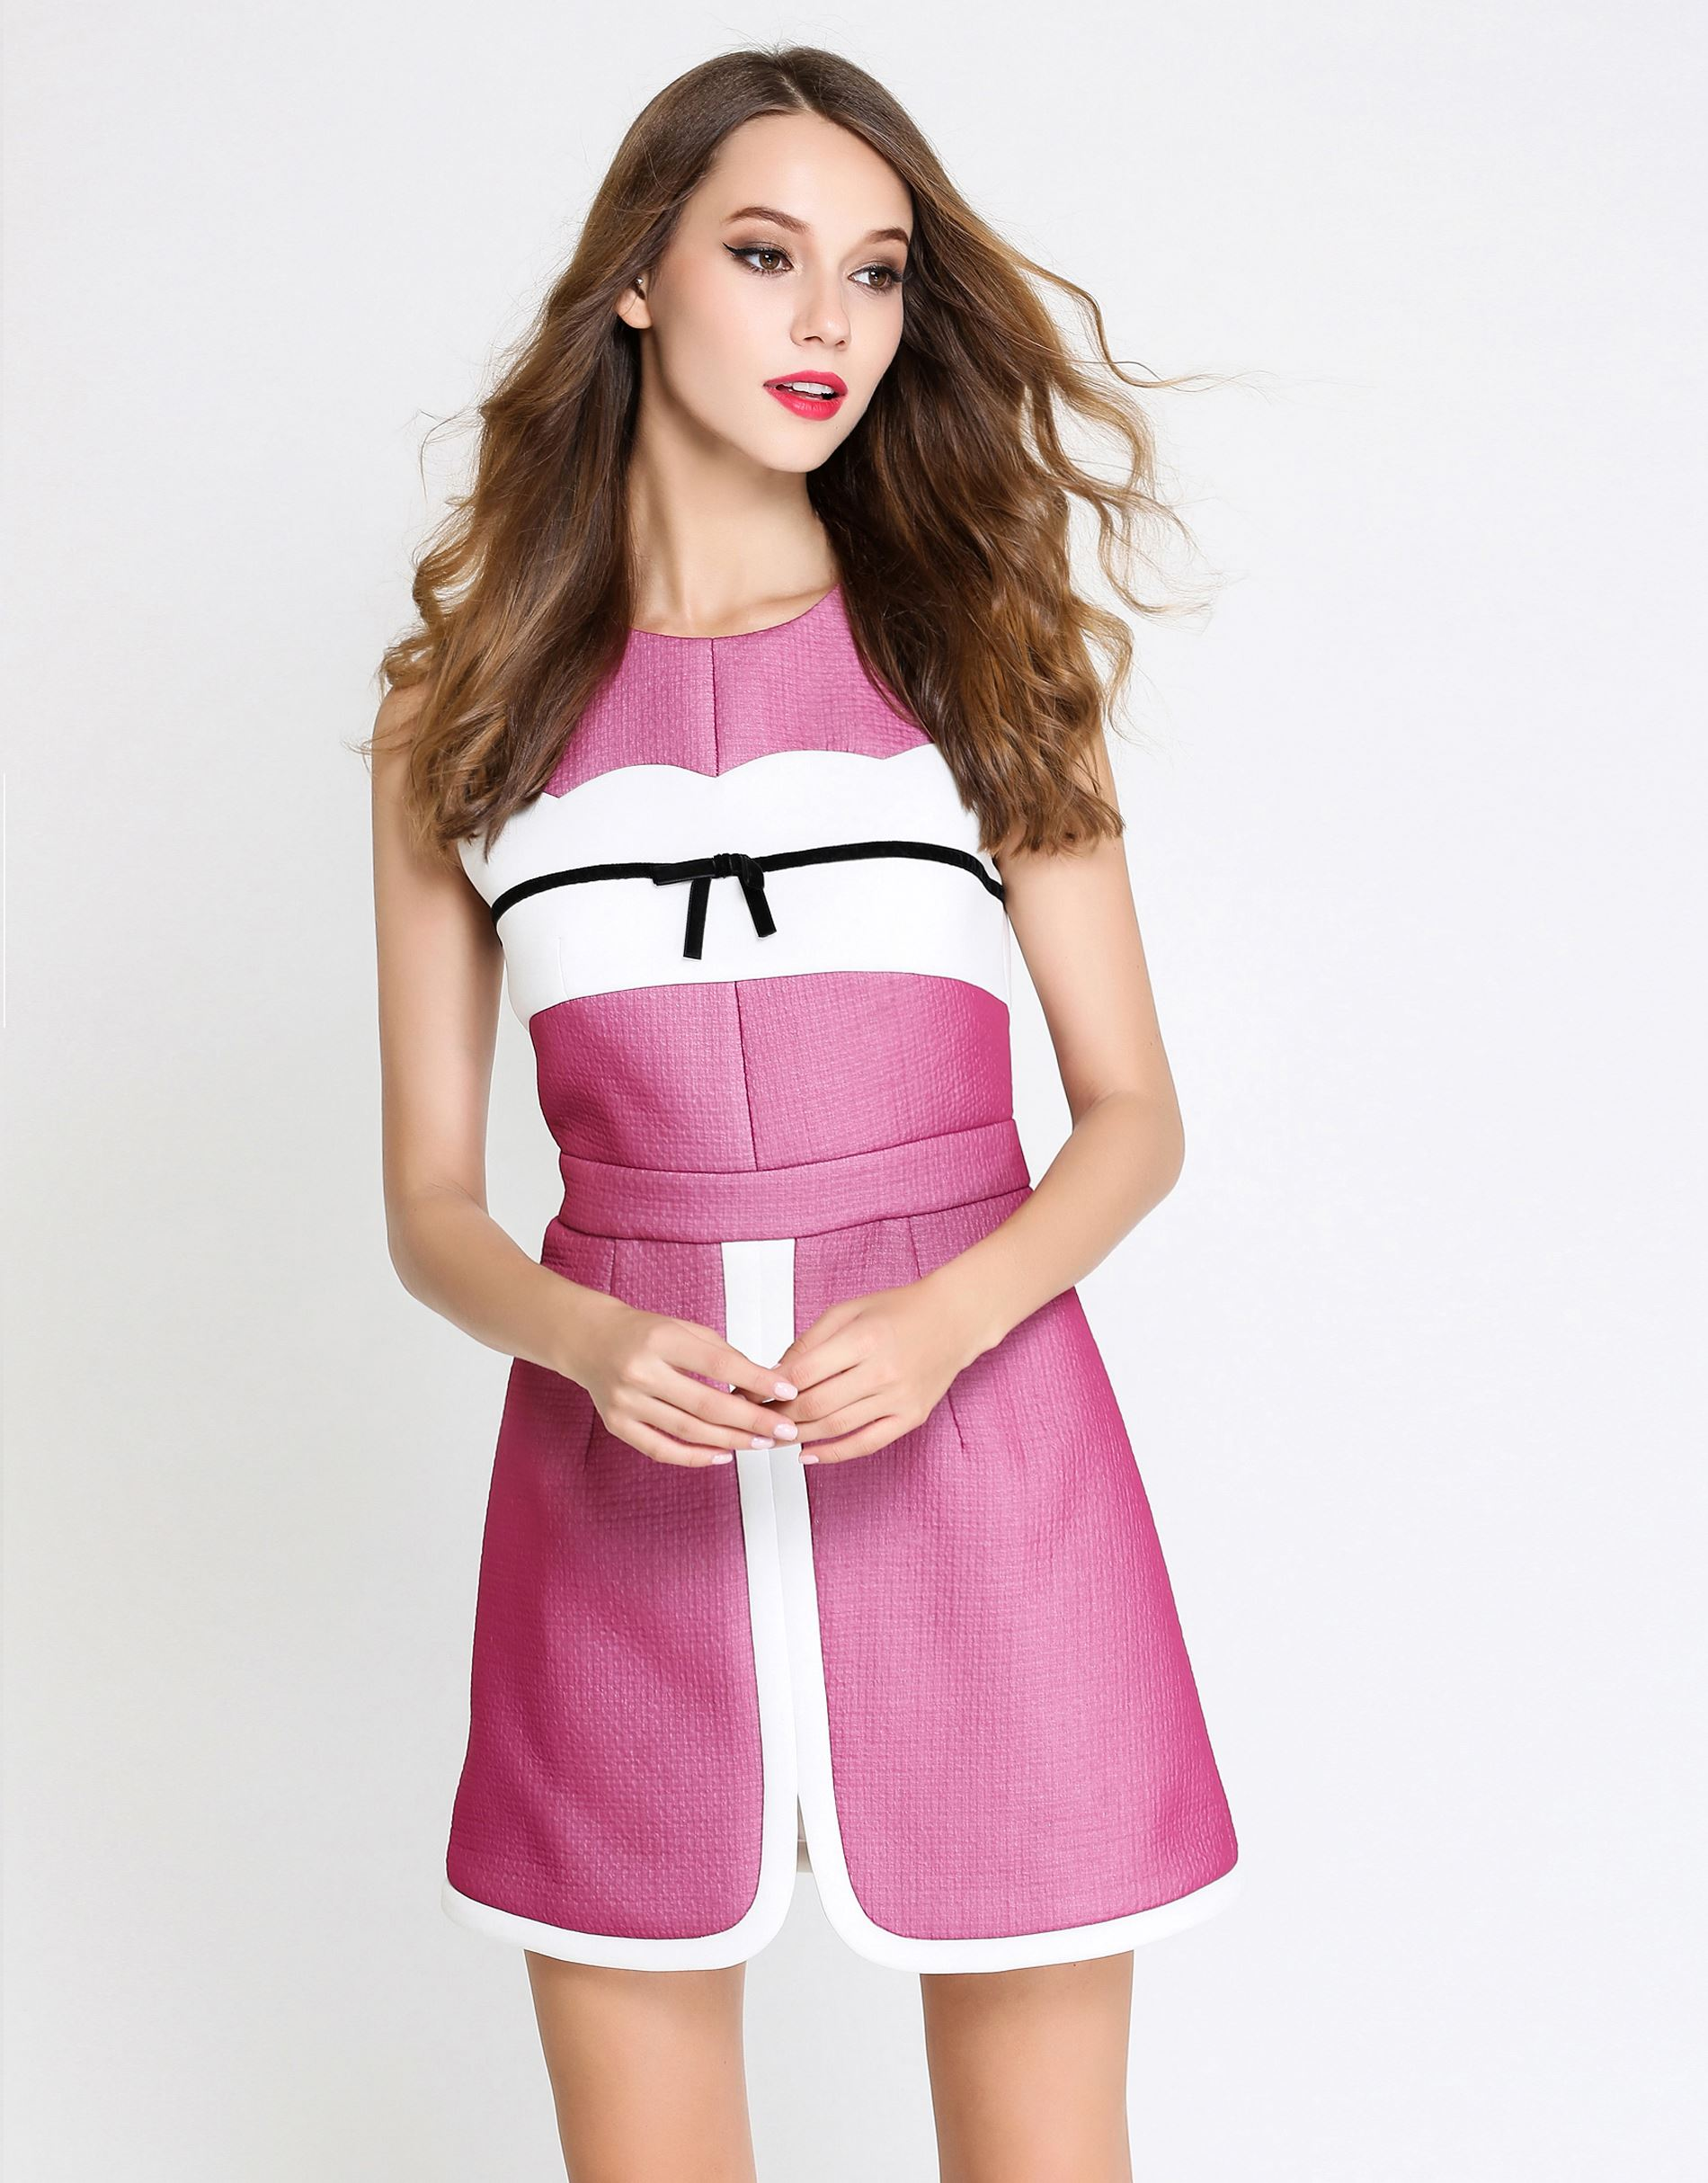 COMINO COUTURE PINK PASSION DRESS